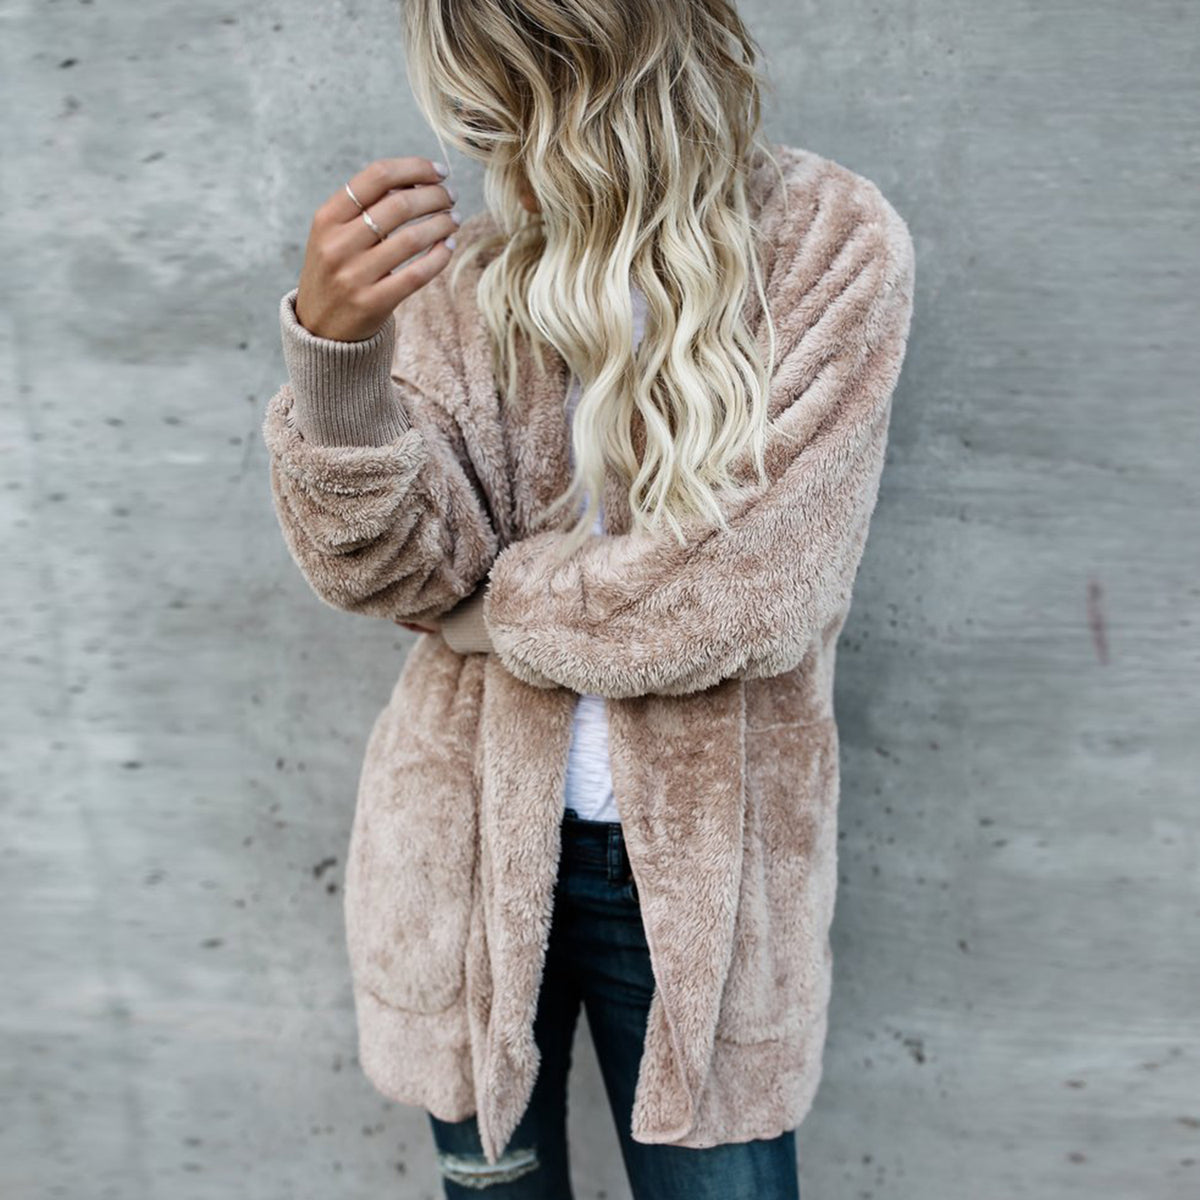 Revers Faux Fur Hoodie Coat - worthtryit.com